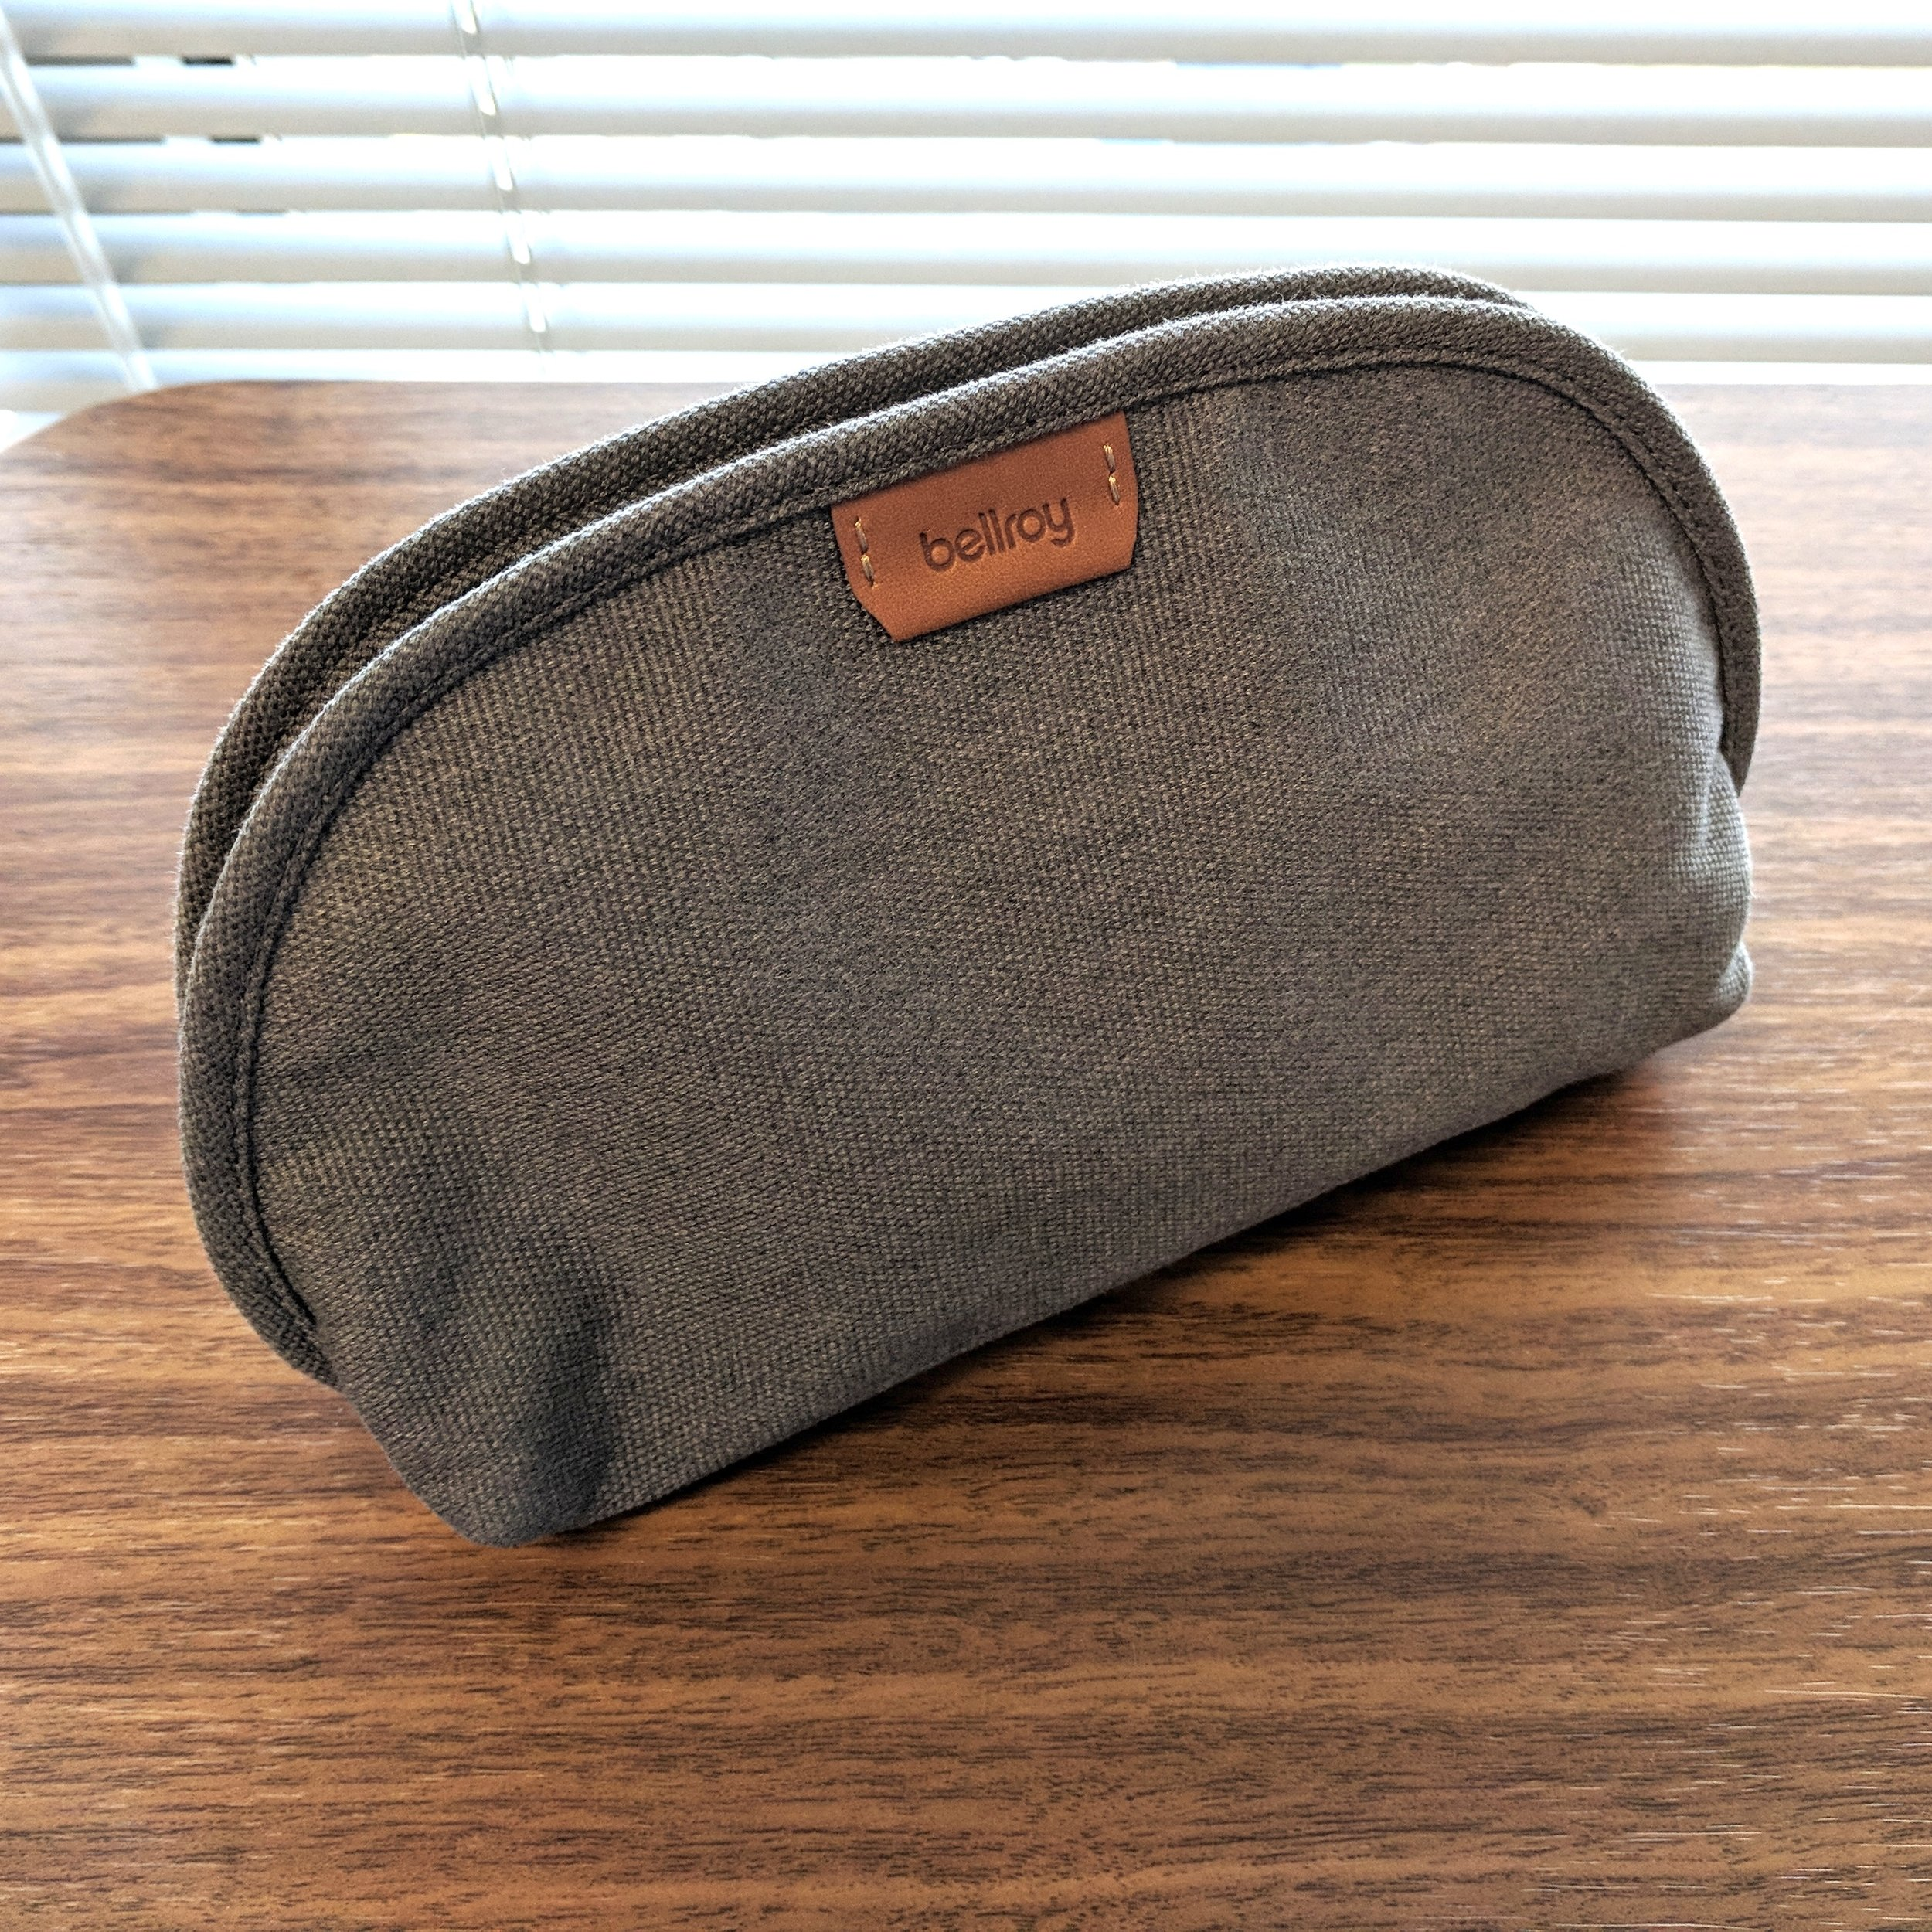 Who would've guessed that this relatively simple accessories pouch would've been one of my favorite items of 2018?